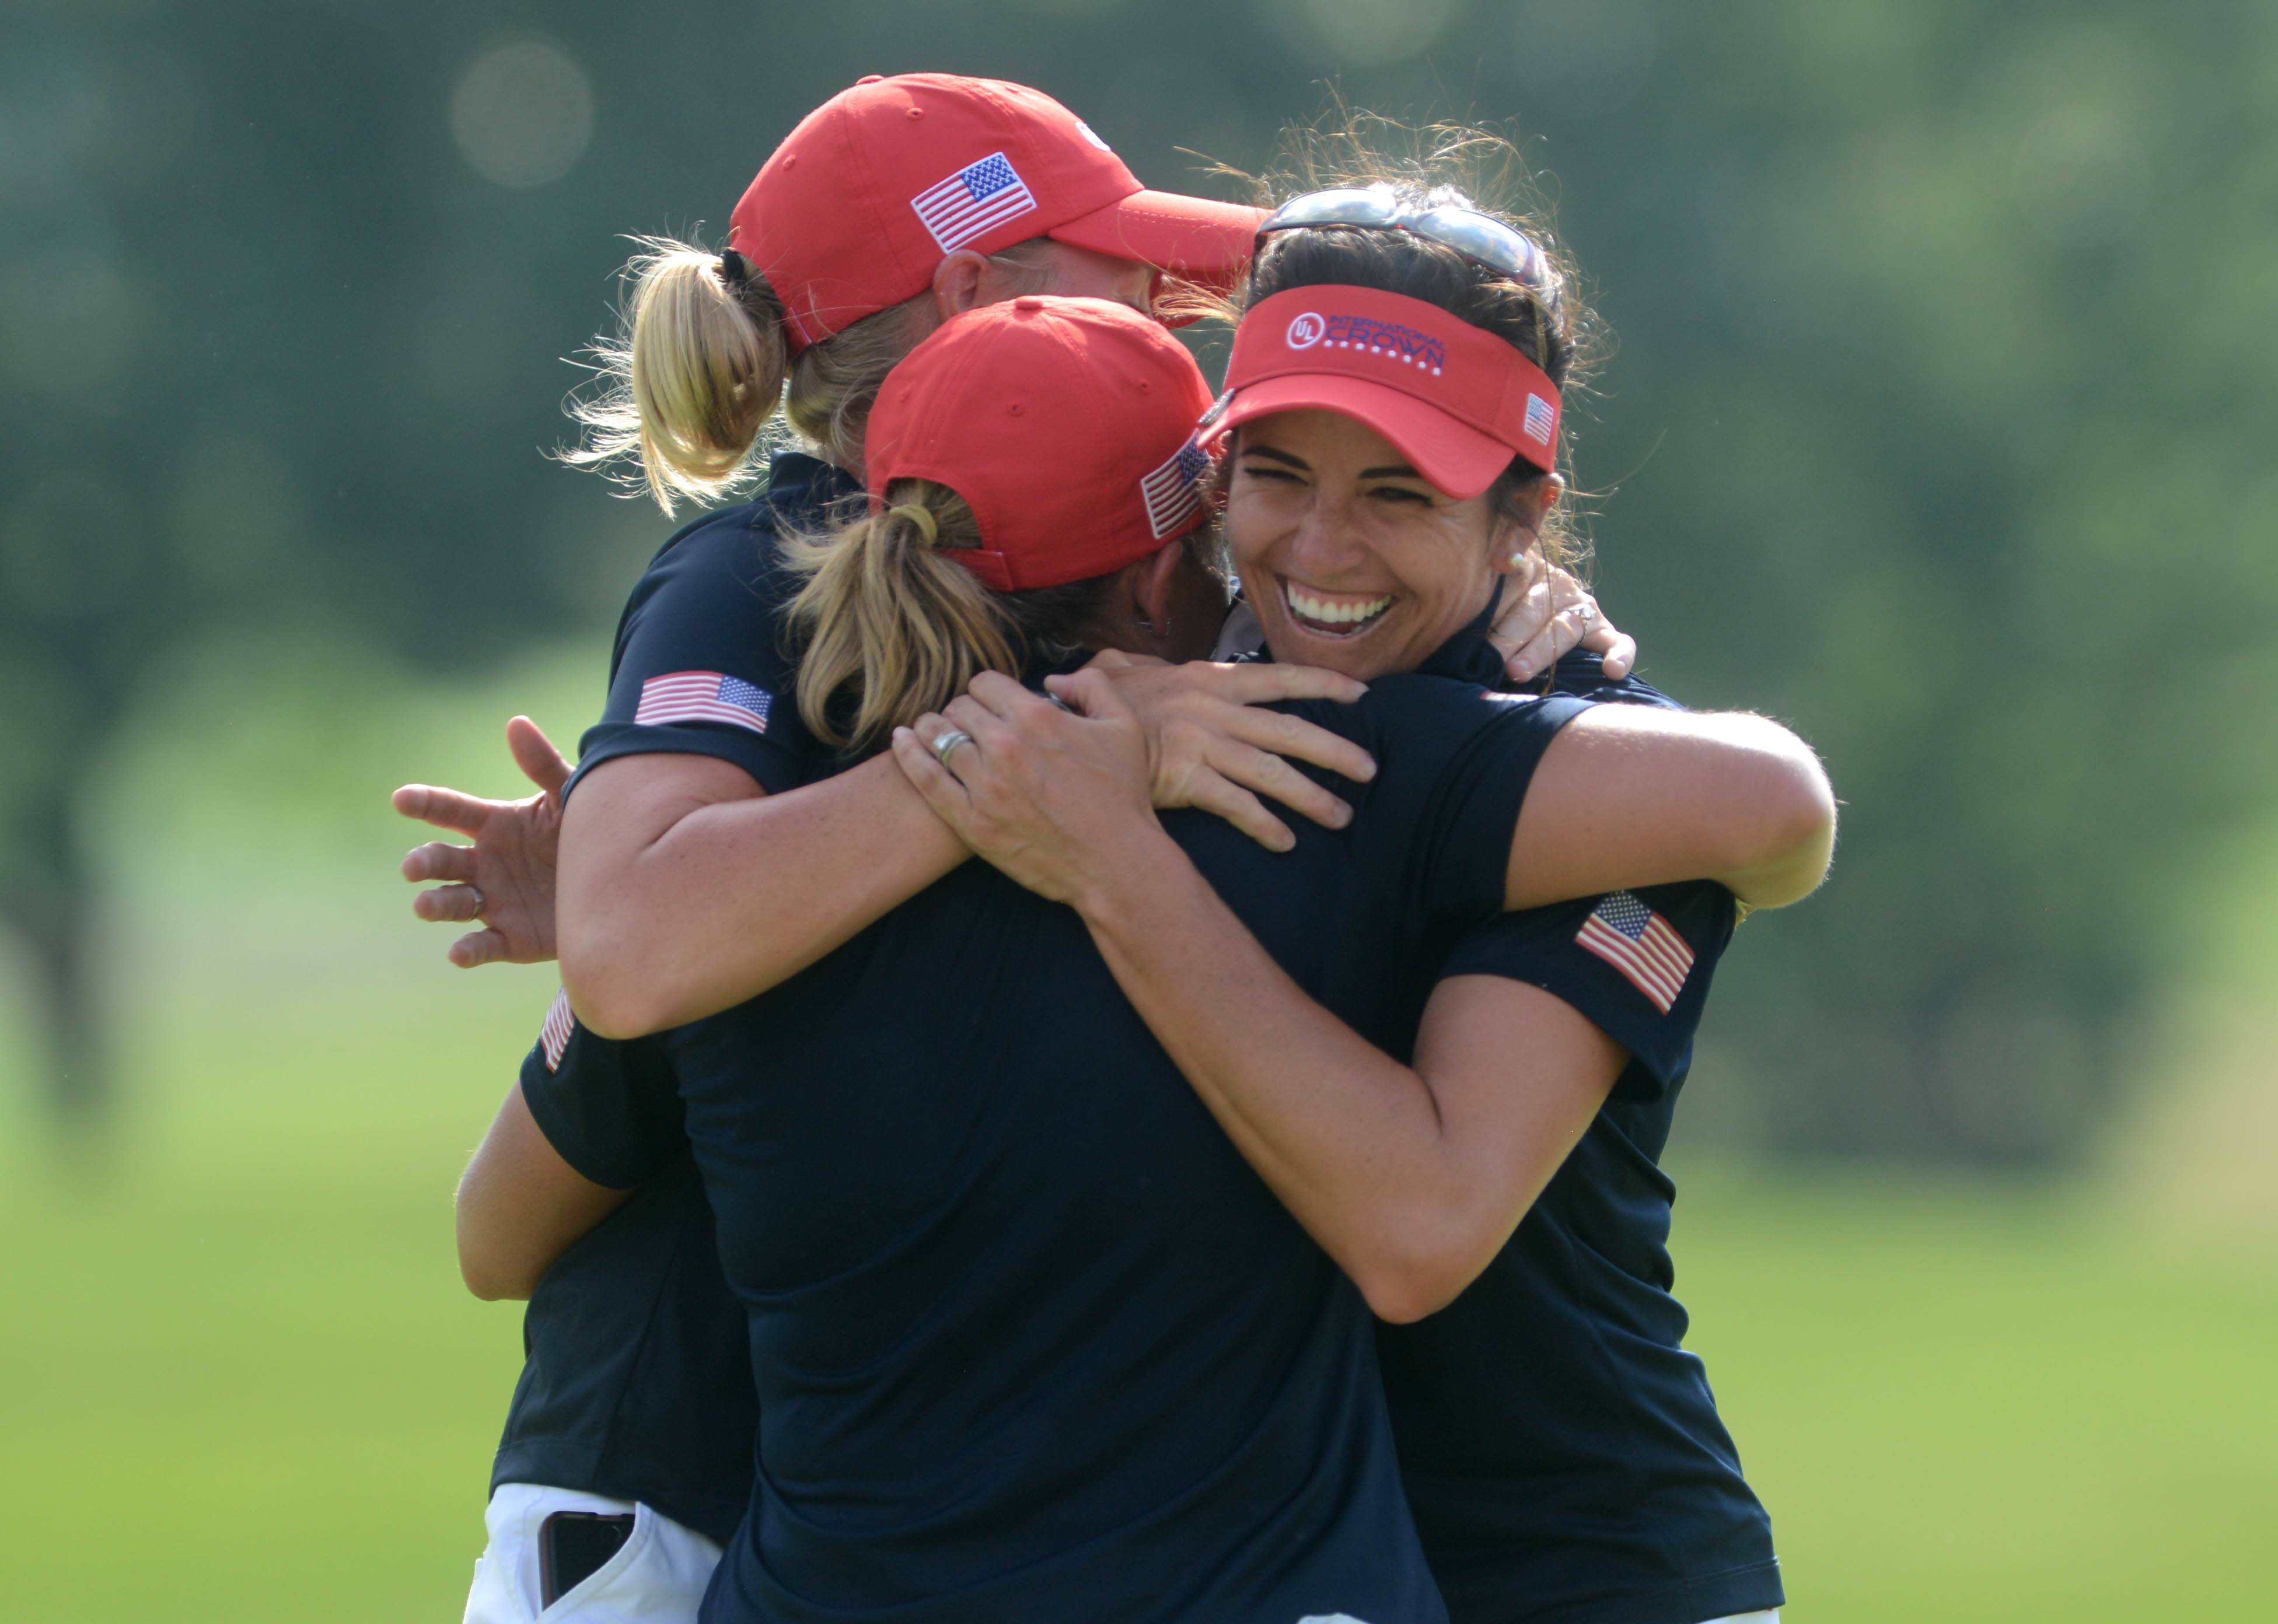 Morgan Timms/mtimms@dailyherald.com Stacy Lewis, Gerina Piller and Cristie Kerr embrace after Kerr's win against England's Melissa Reid and the realization sinks in that they have won the UL International Crown women's golf tournament Sunday at the Merit Club in Gurnee.